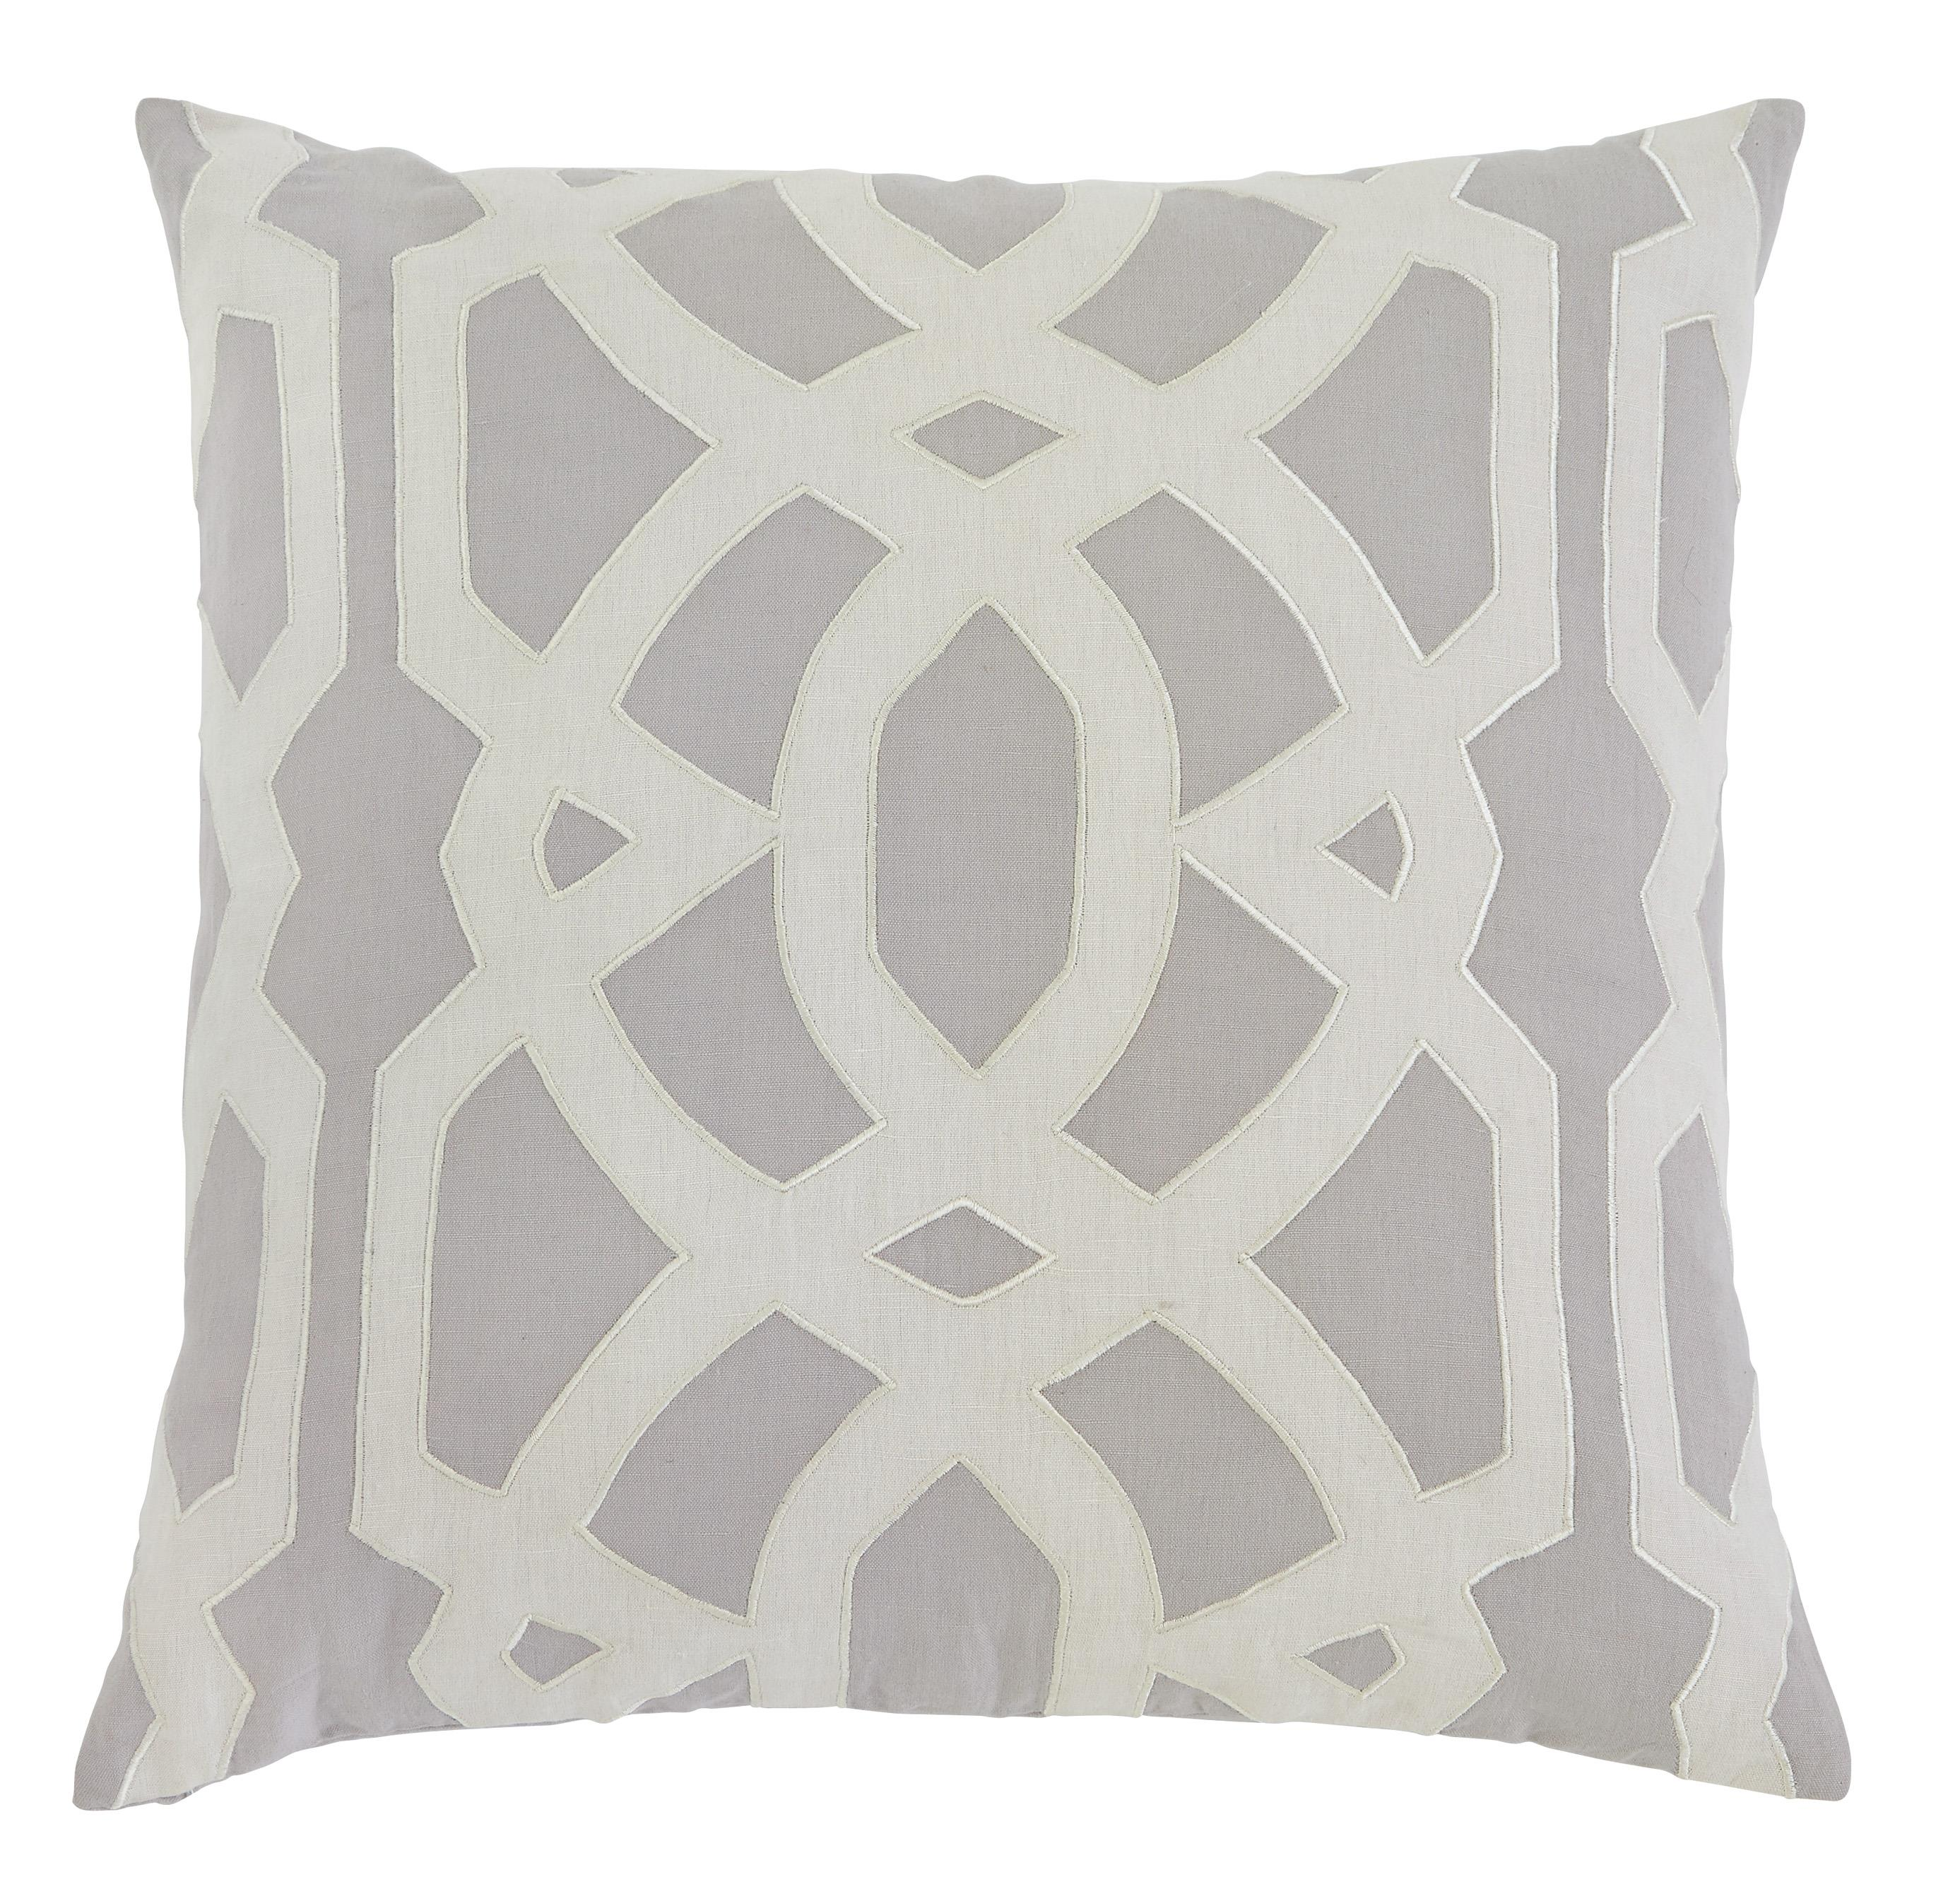 Signature Design by Ashley Pillows Gate - Gray Pillow Cover - Item Number: A1000397P